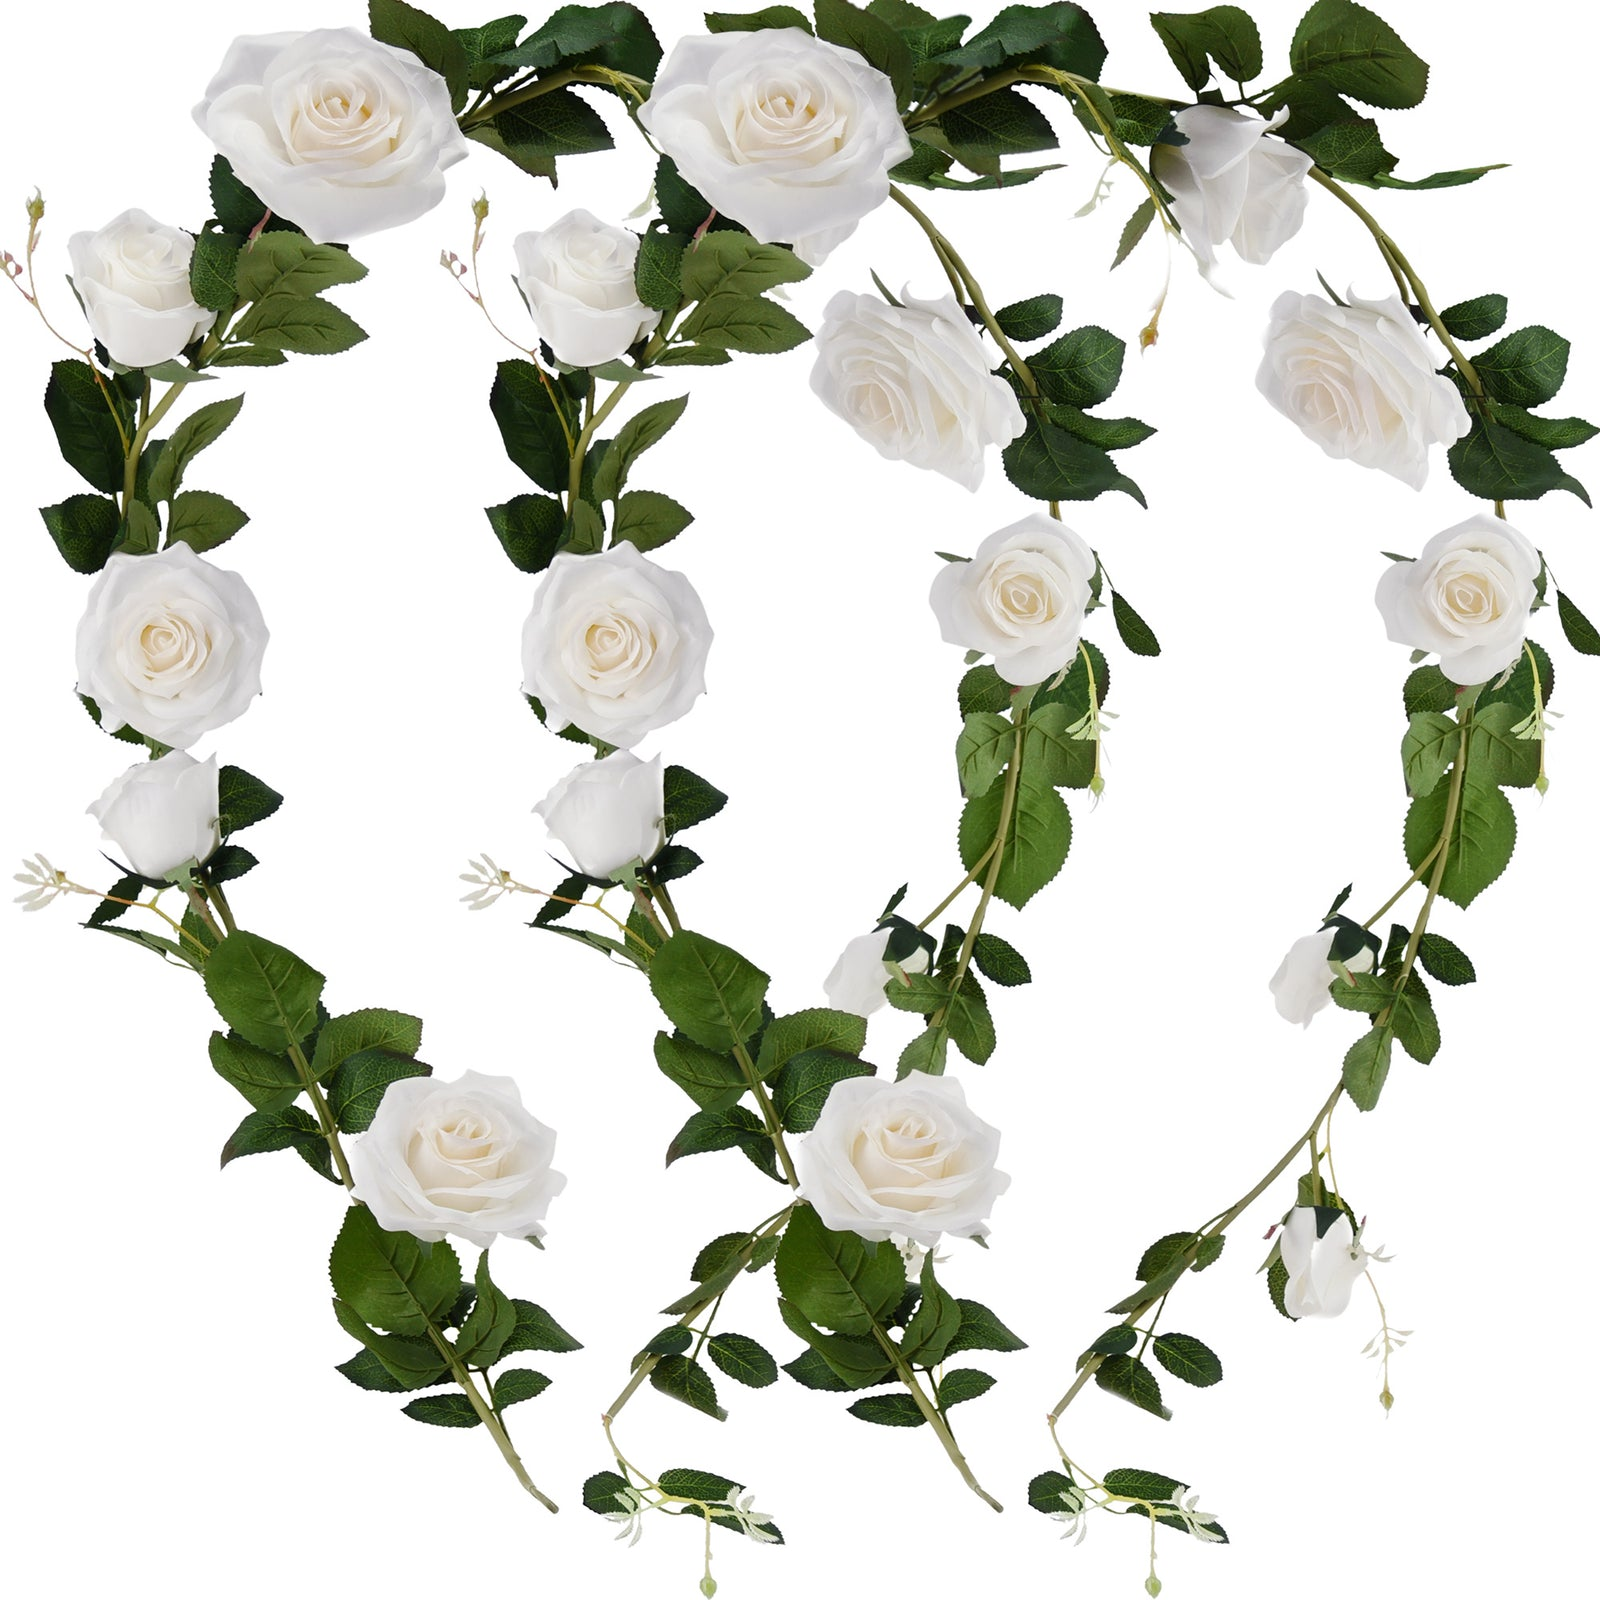 FiveSeasonStuff 2 Pcs Bendable Flower Garland Artificial Silk Rose Vine Leaves Hanging Face Flowers for Wall Decoration, Wreaths (White)